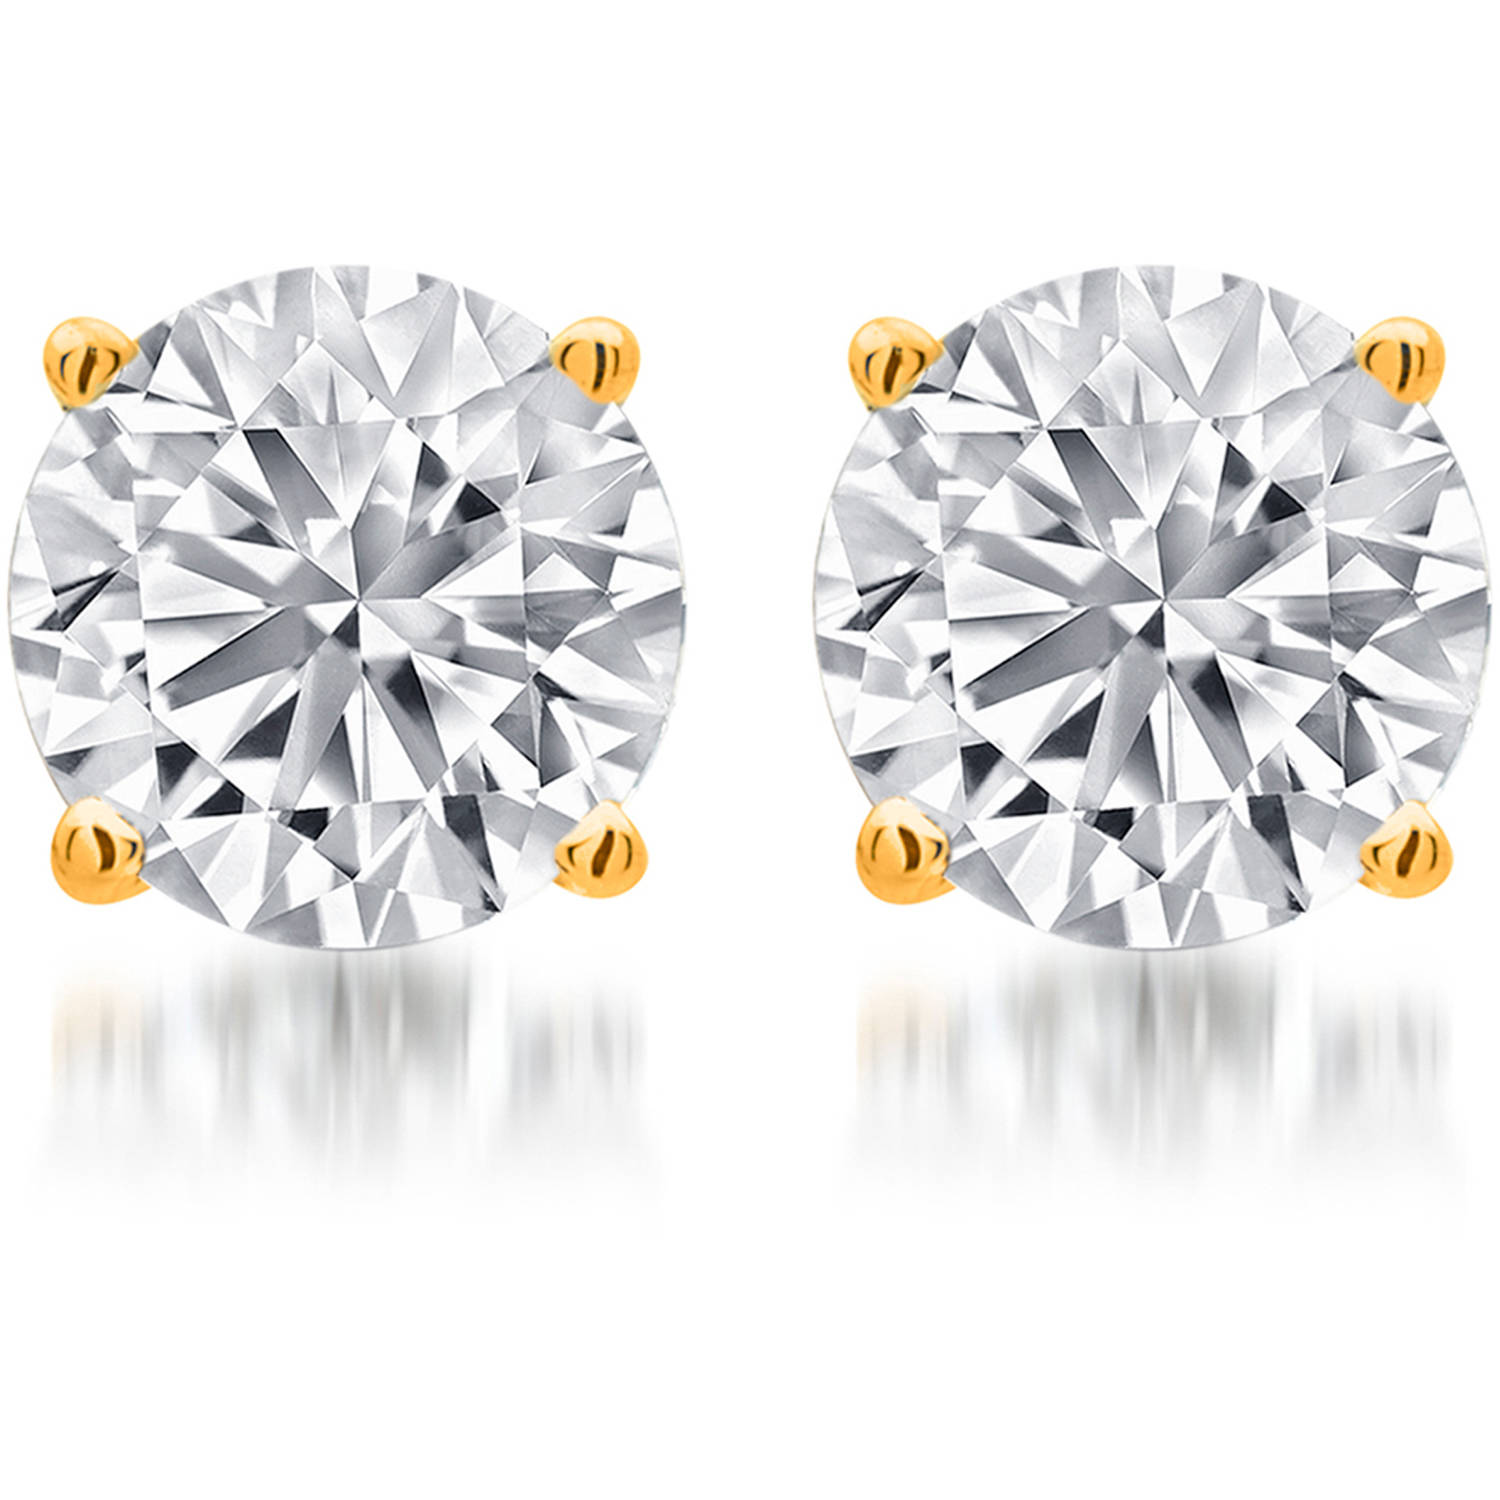 3/4 Carat T.W. Round White Diamond Yellow Gold over Sterling Silver Stud Earrings